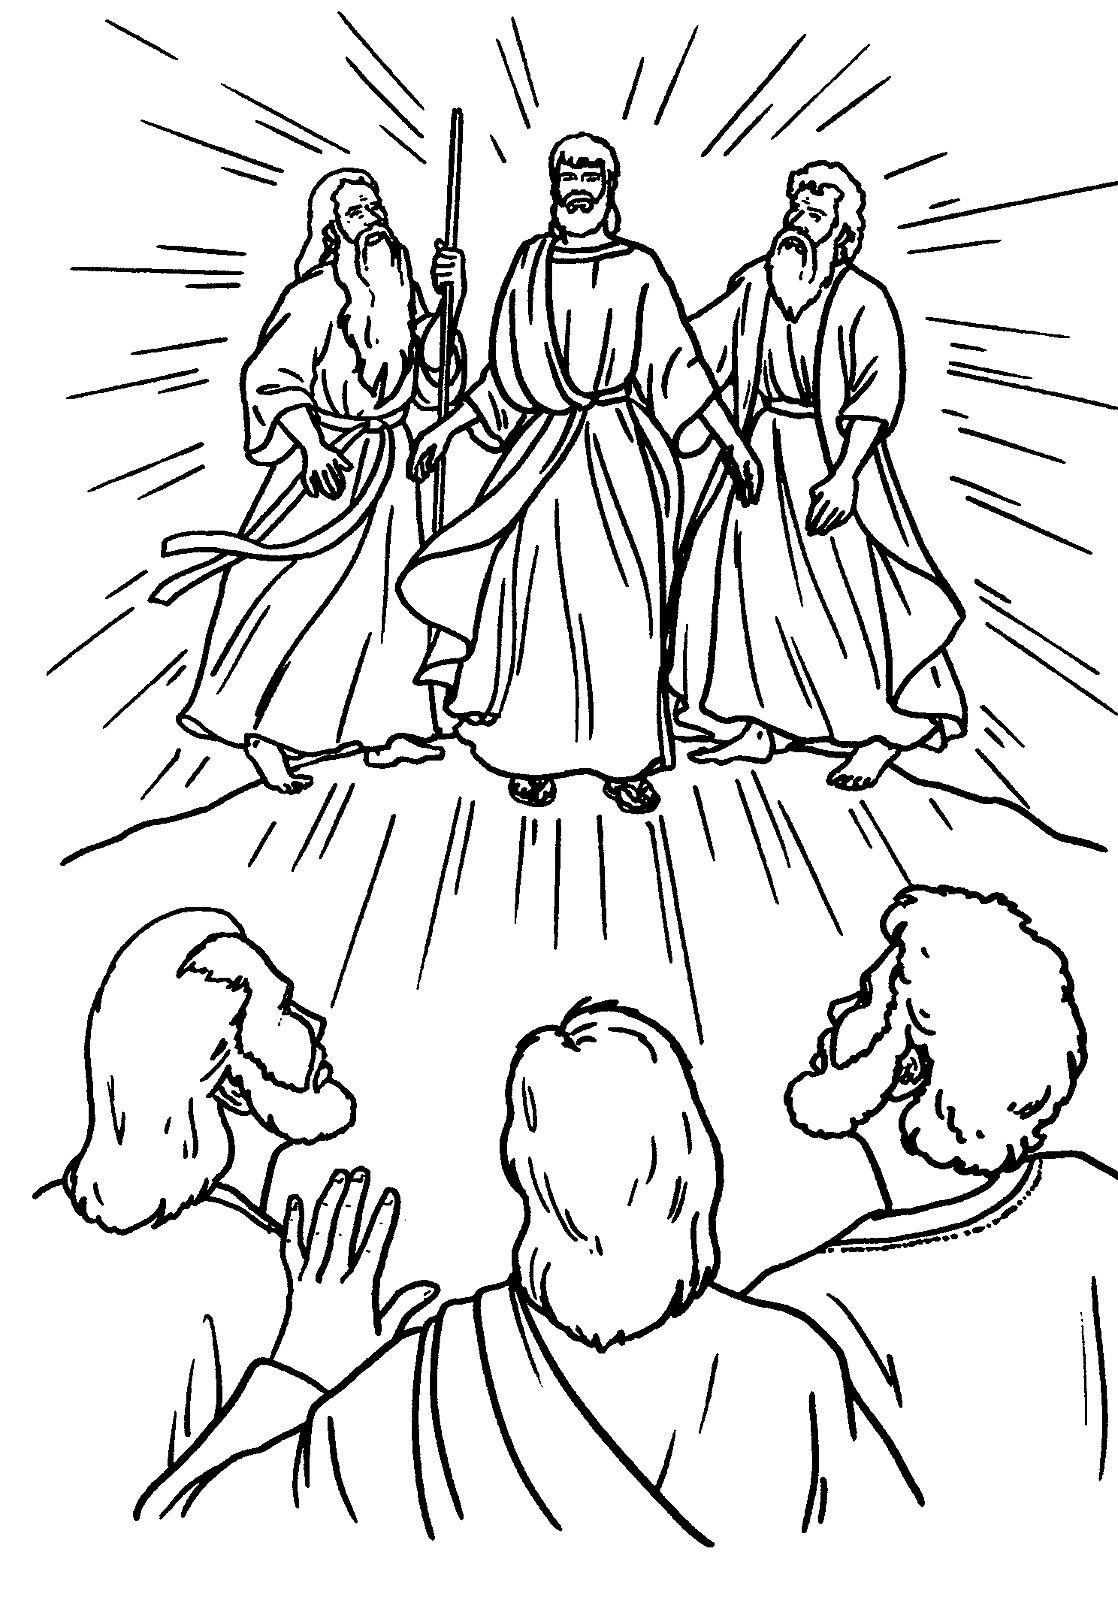 the transfiguration of jesus coloring page jesus transfiguration coloring page coloring home page jesus of the transfiguration coloring